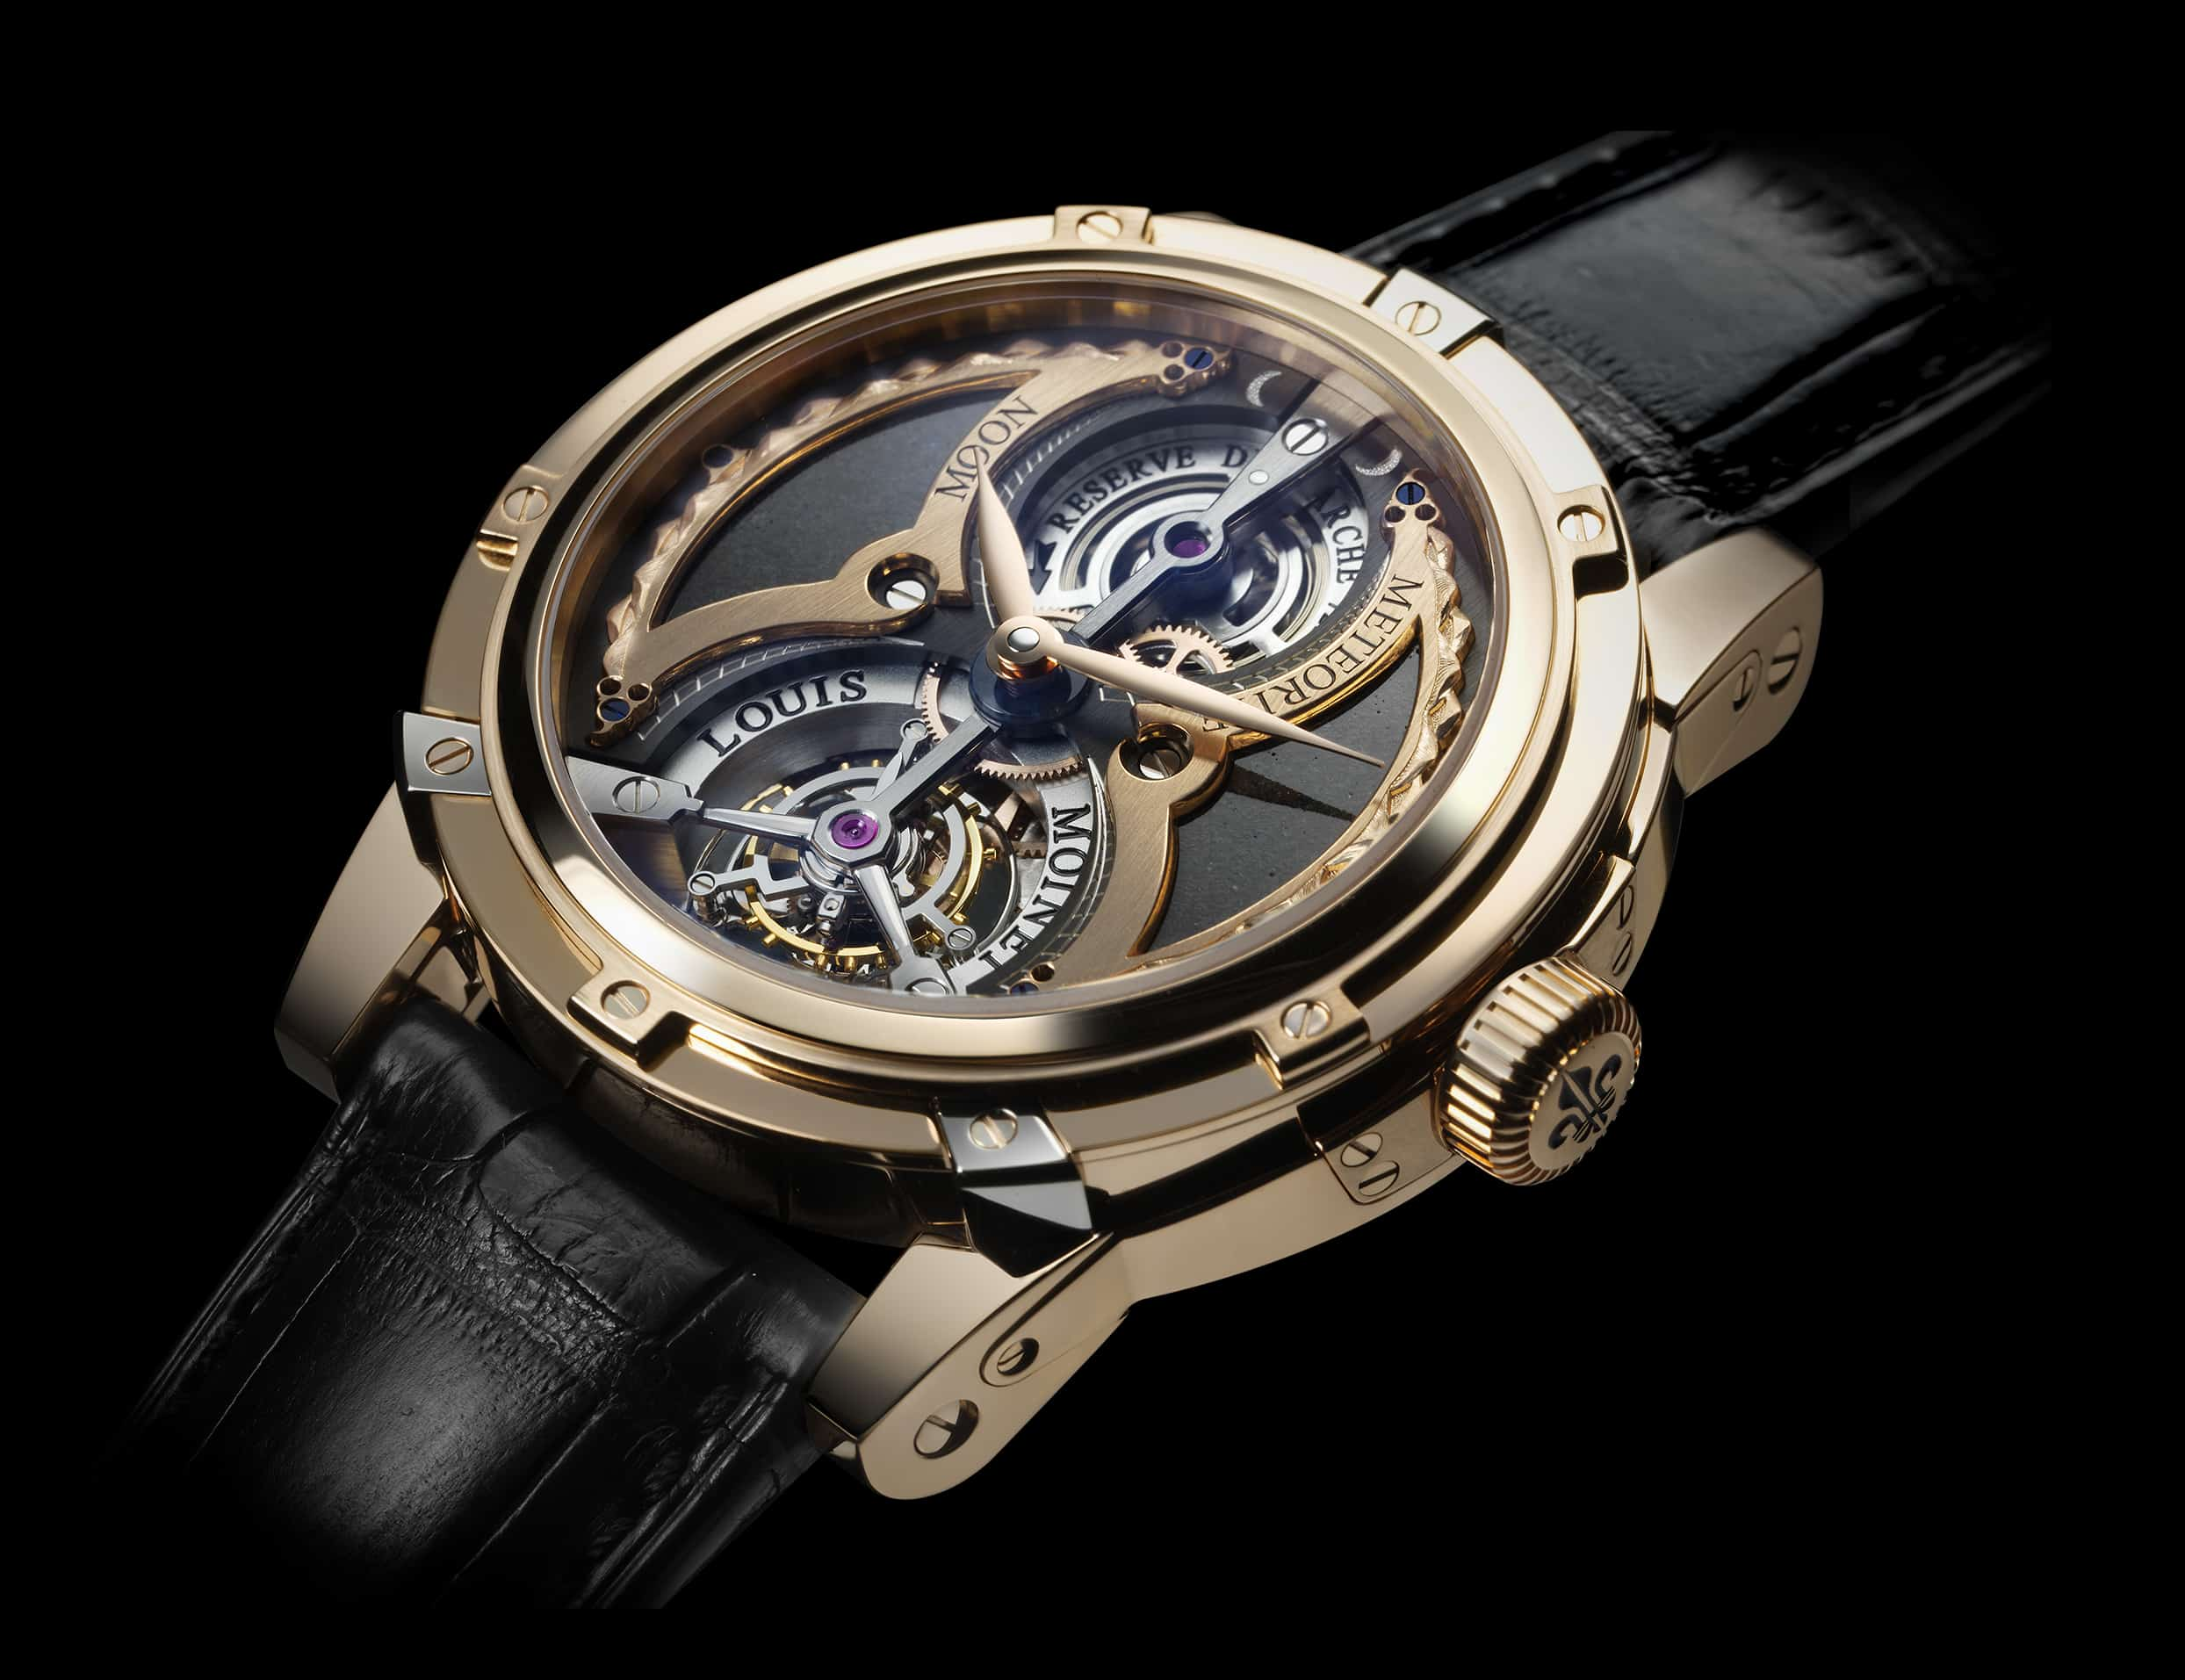 Louis Moinet Meteoris – expensive watch